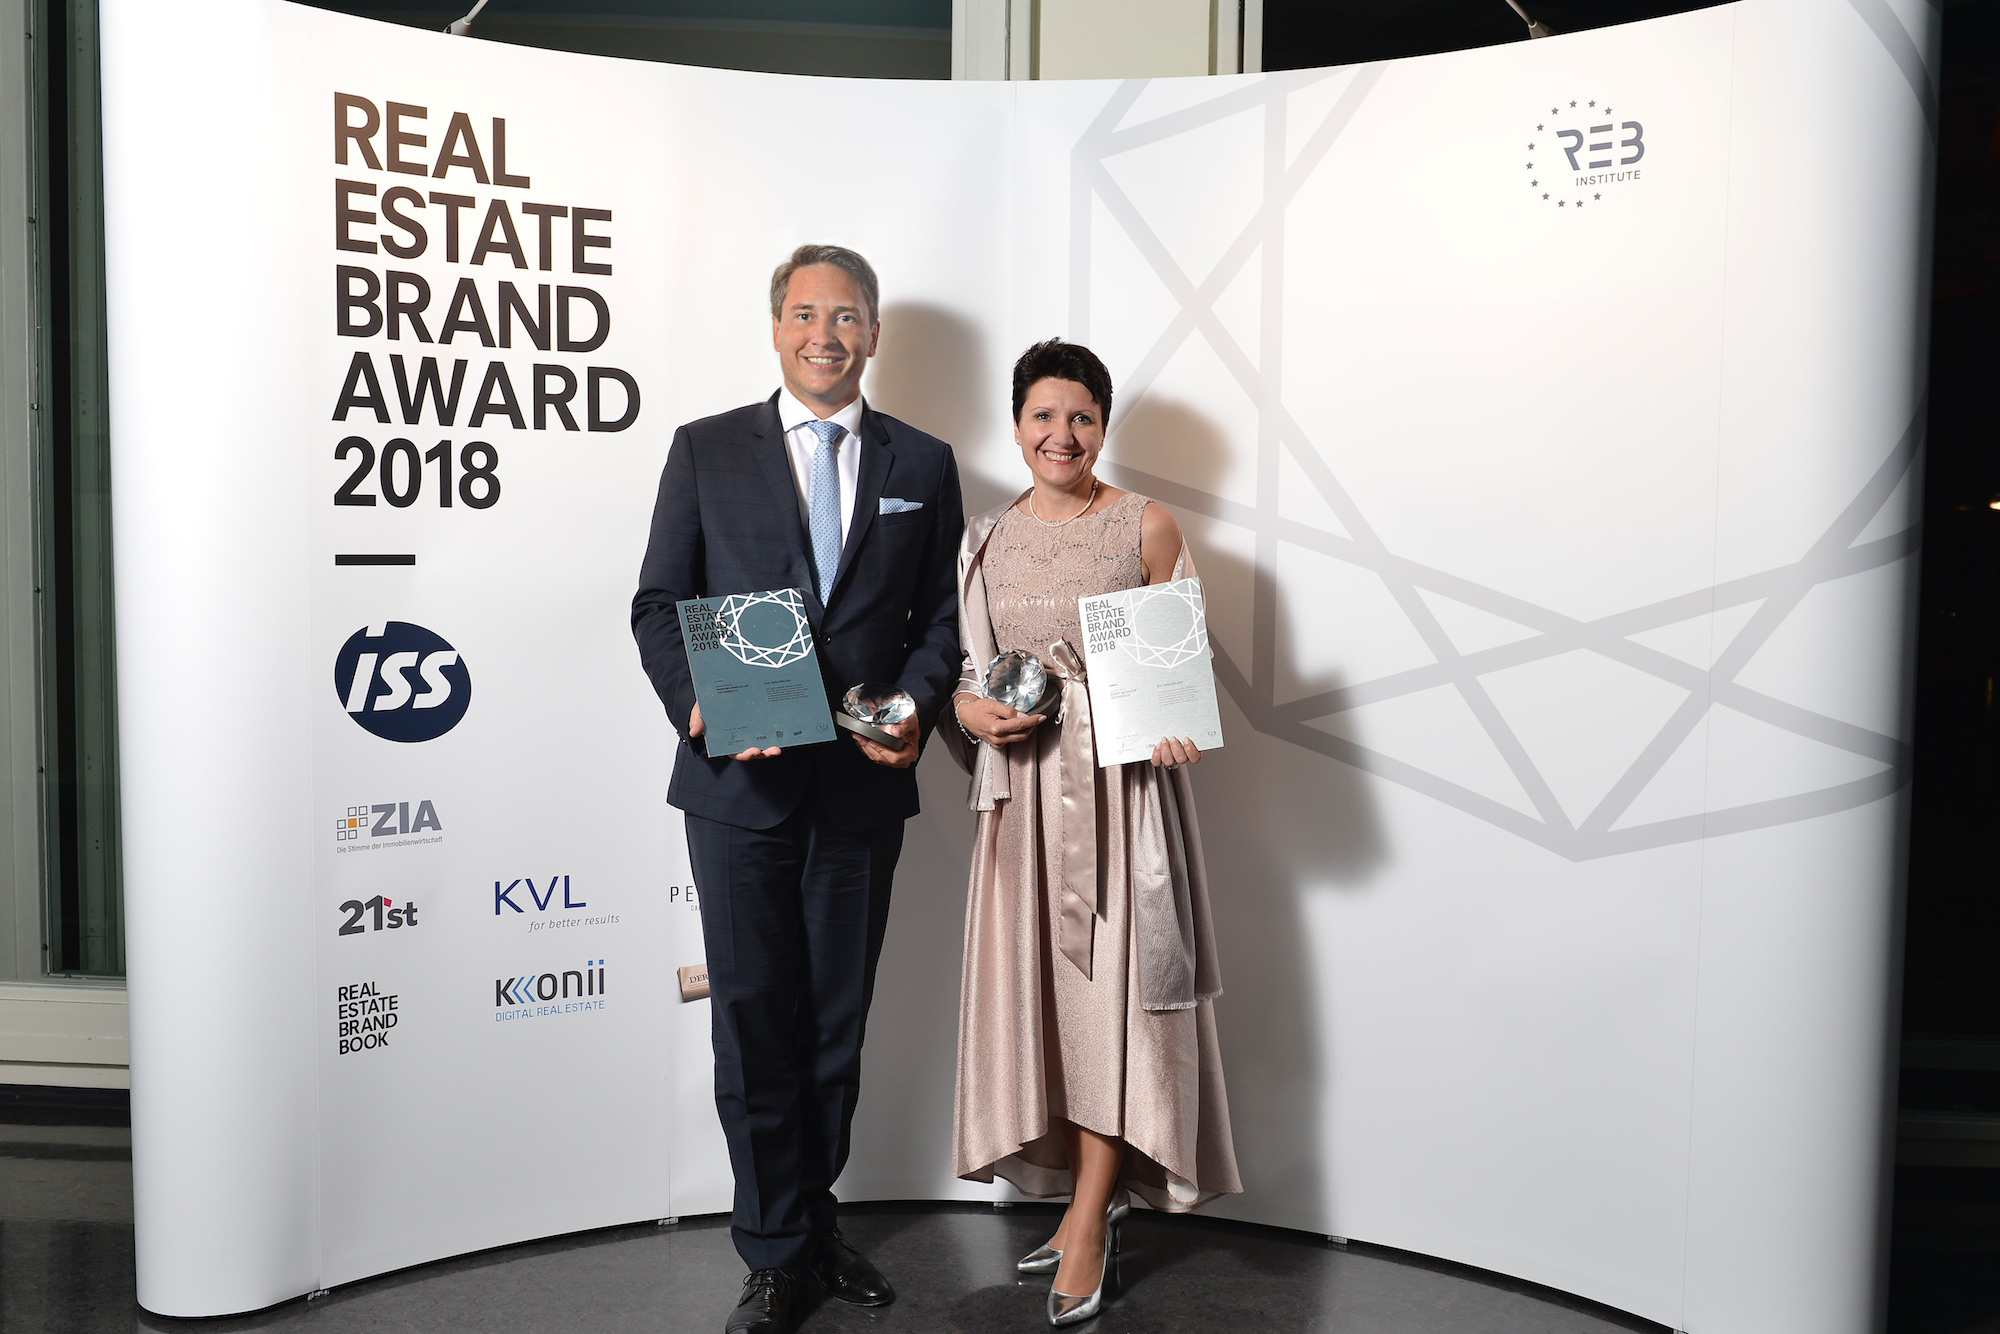 EHL: Real Estate Brand Award